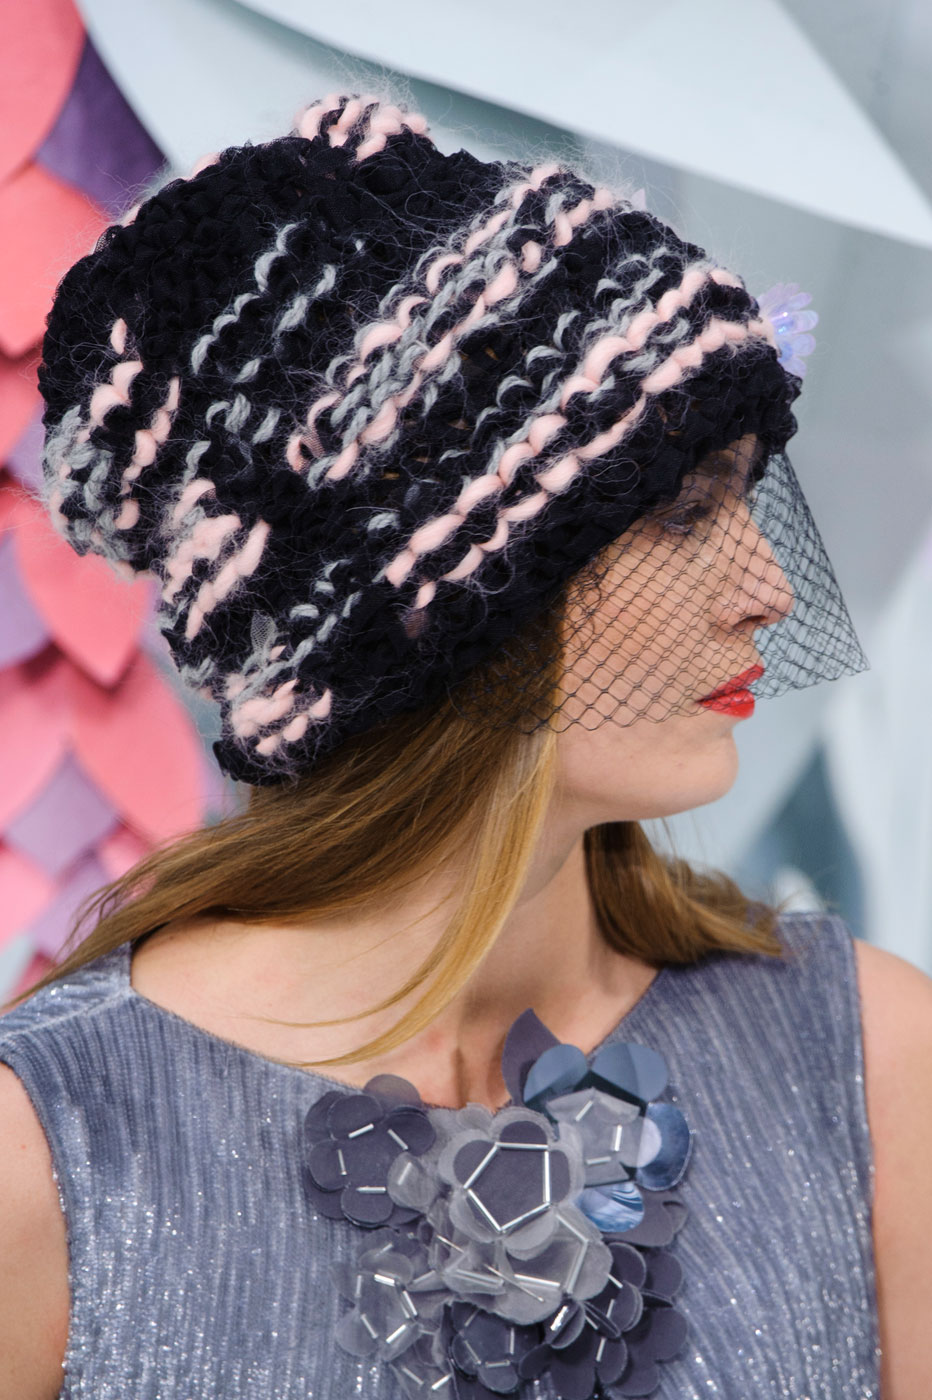 Chanel-fashion-runway-show-close-ups-haute-couture-paris-spring-summer-2015-the-impression-105